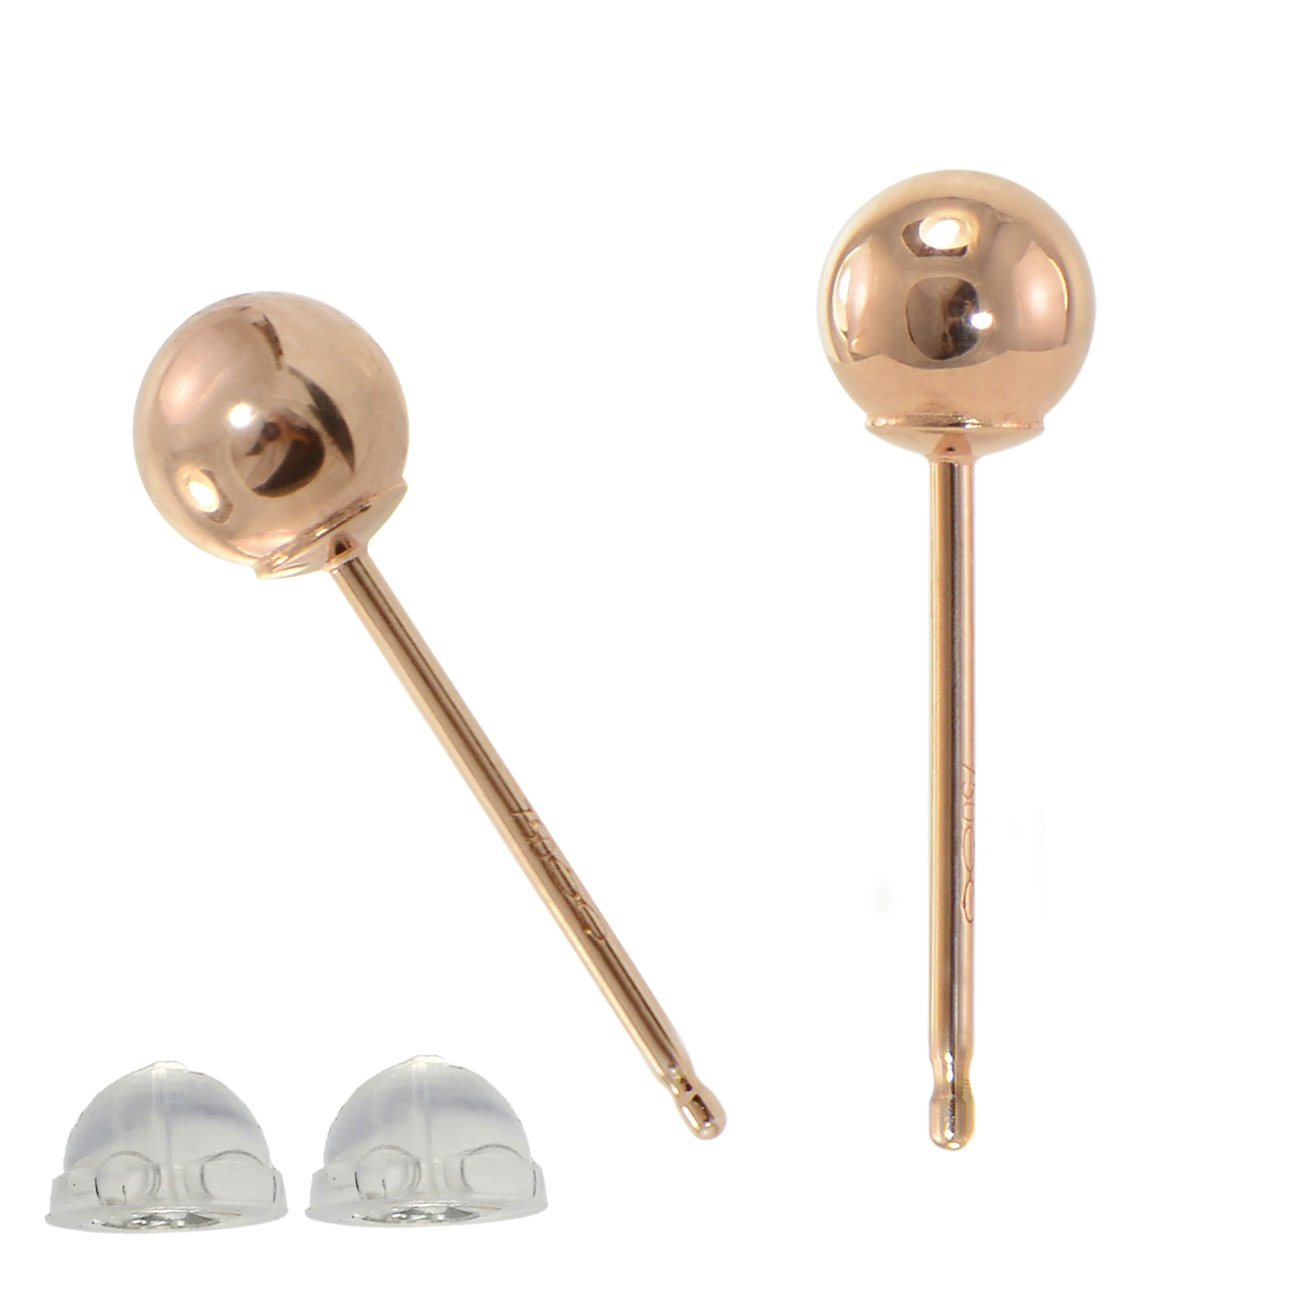 Paialco Solid 18K Rose Gold Tiny Ball Piercing Earring Studs 3MM JOSE JE10878RGA3